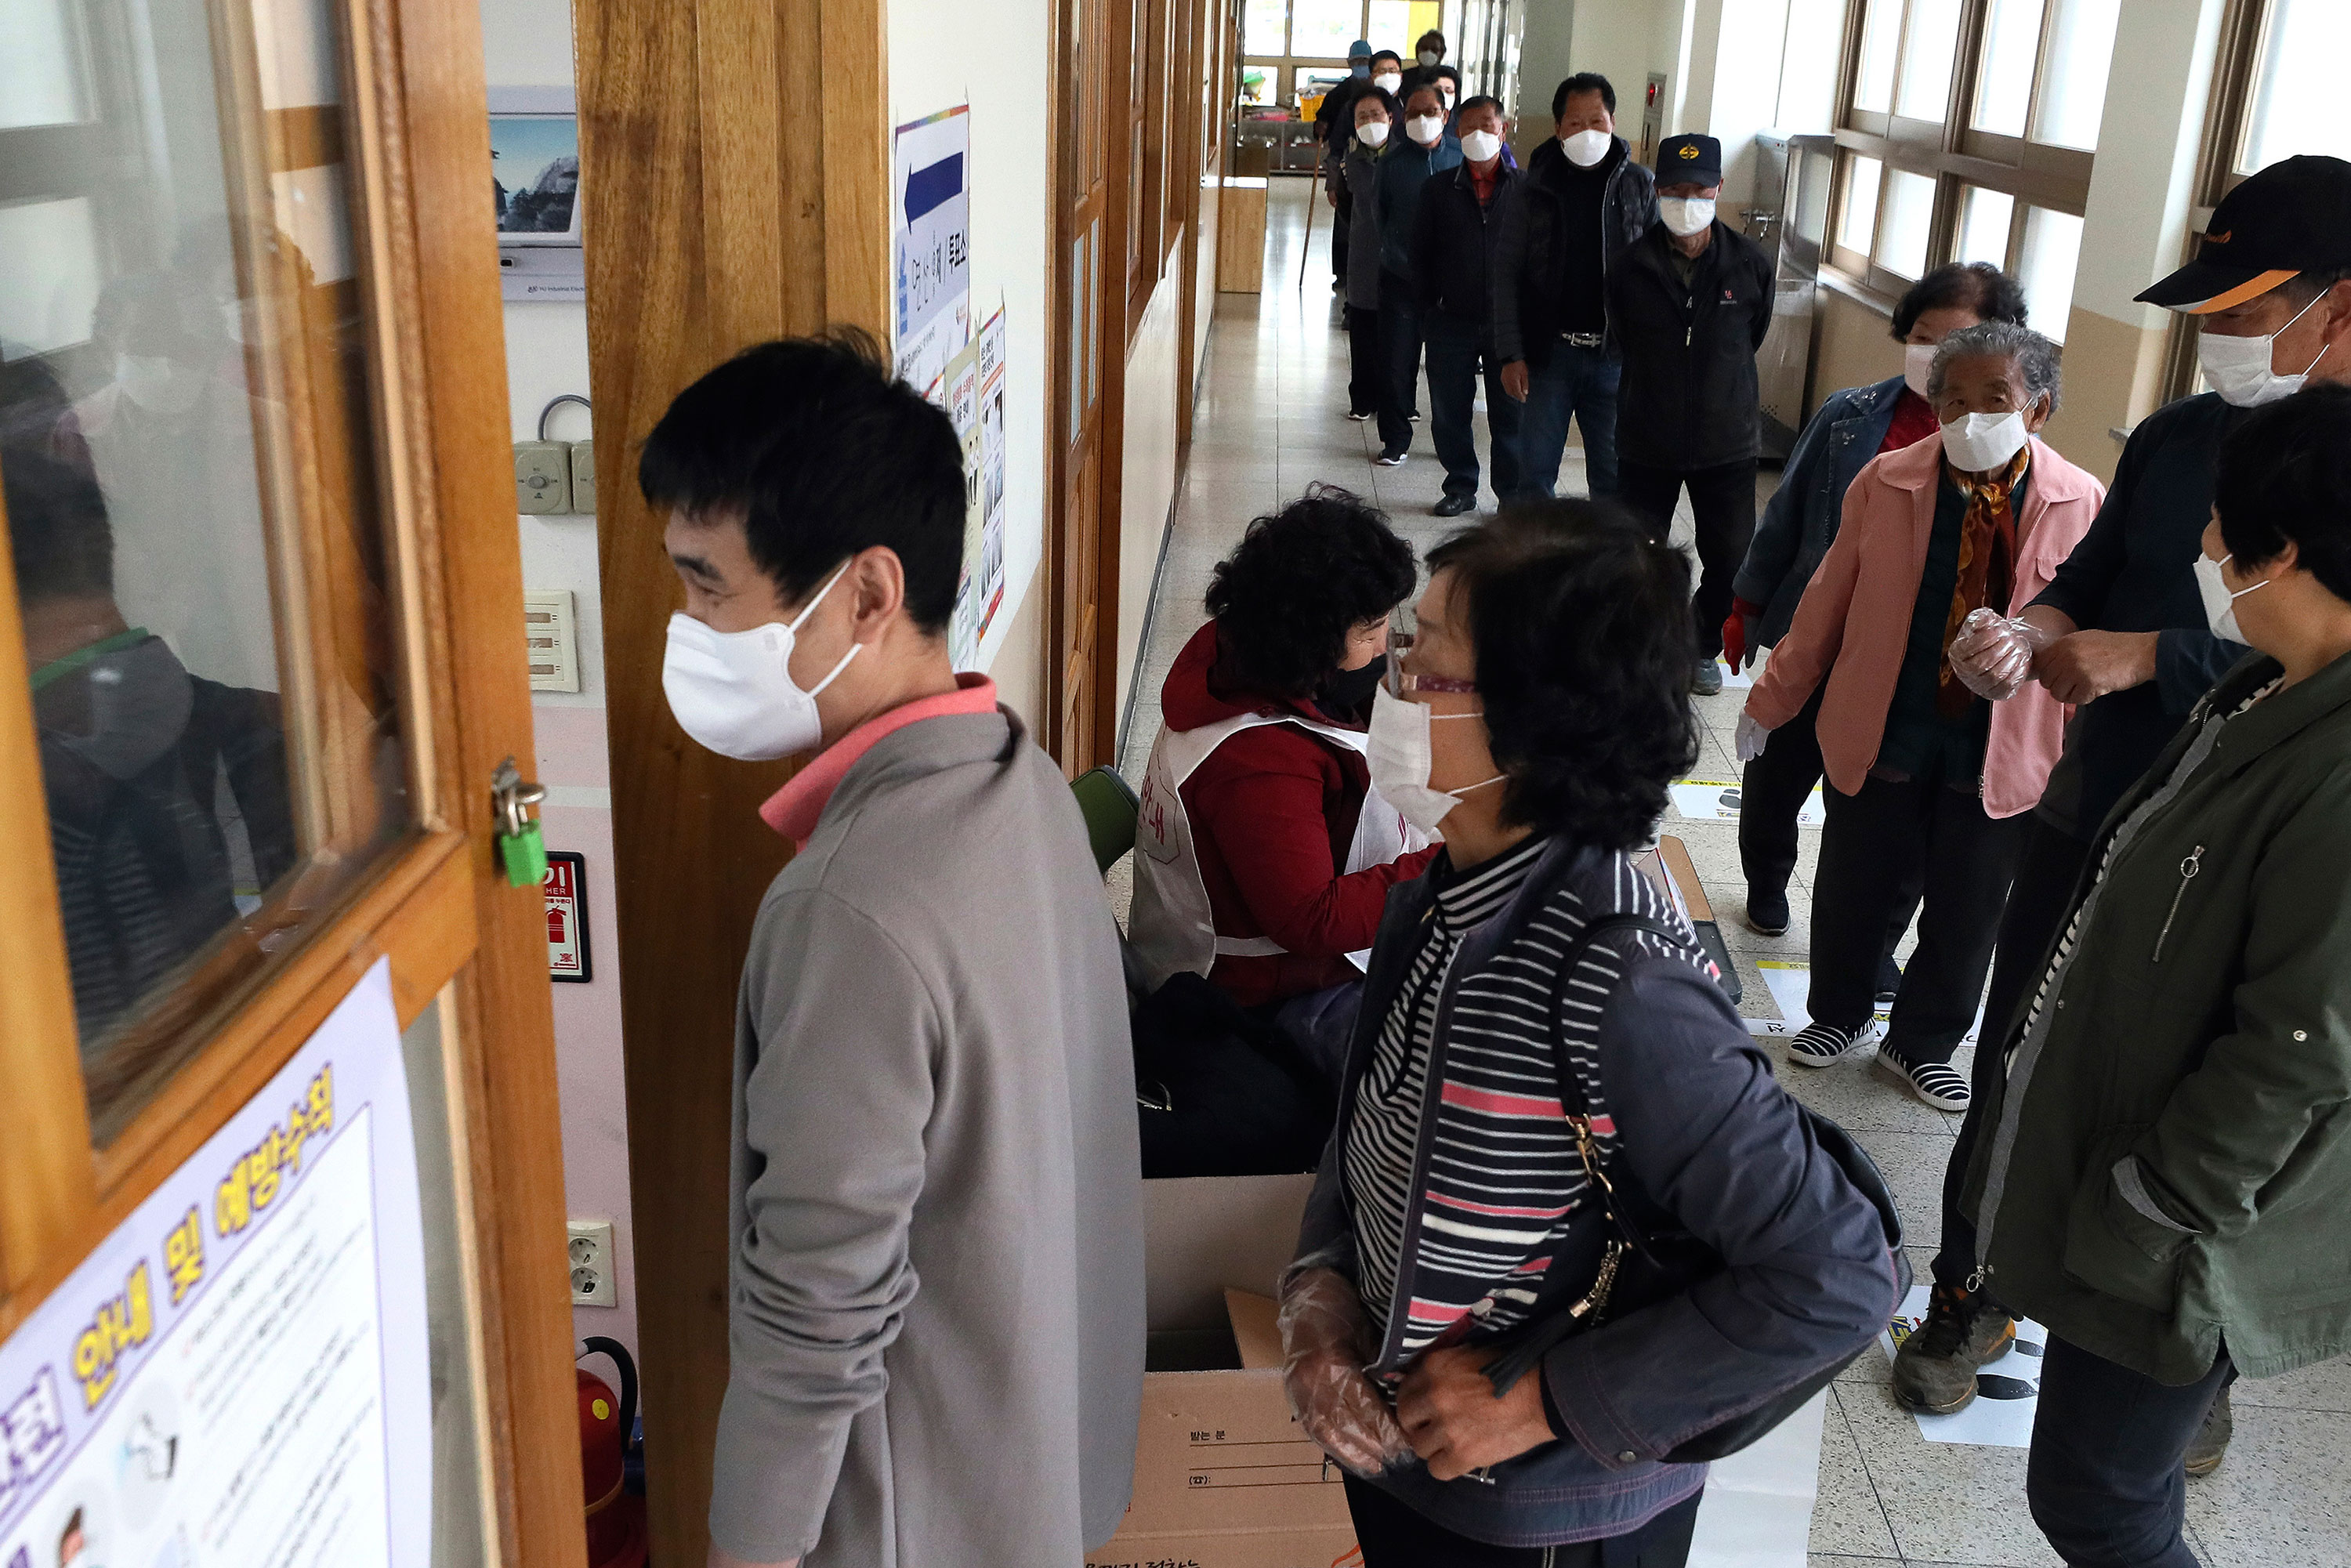 People wait in line to cast for their votes for the parliamentary elections at a polling station in Nonsan, South Korea, on April 15.